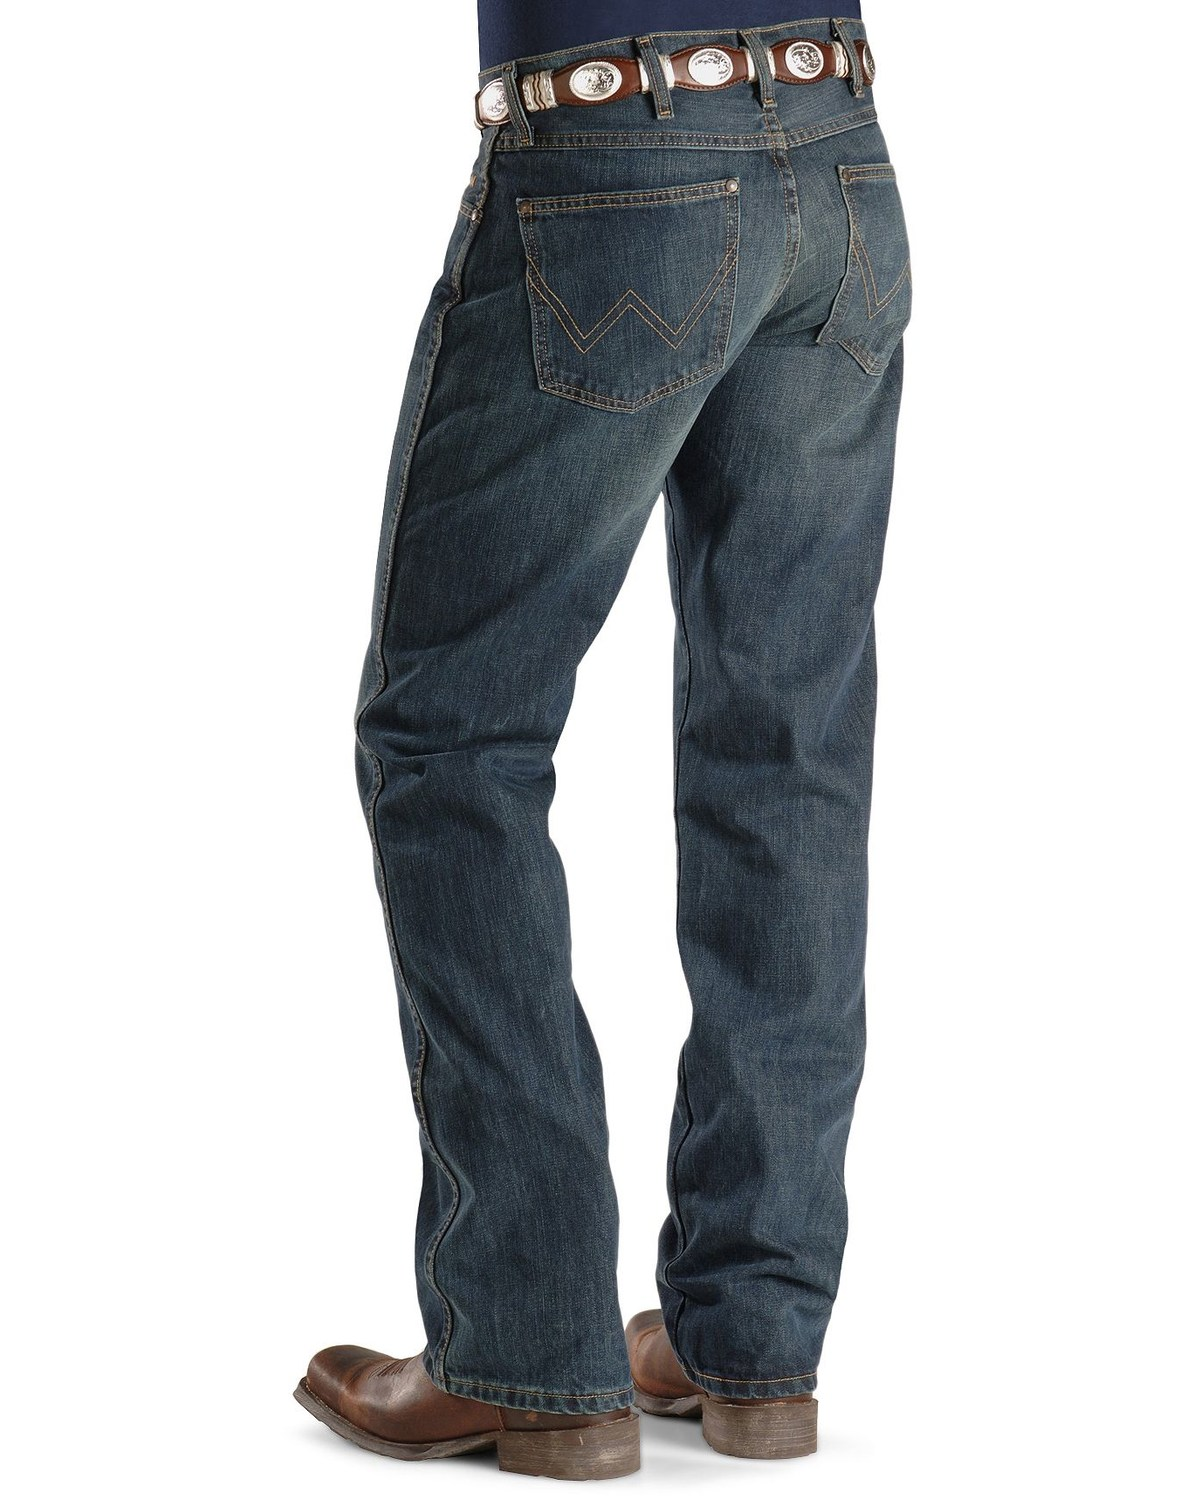 a34afca9a9a1 Wrangler Retro Men s Slim Fit Boot Cut Jeans